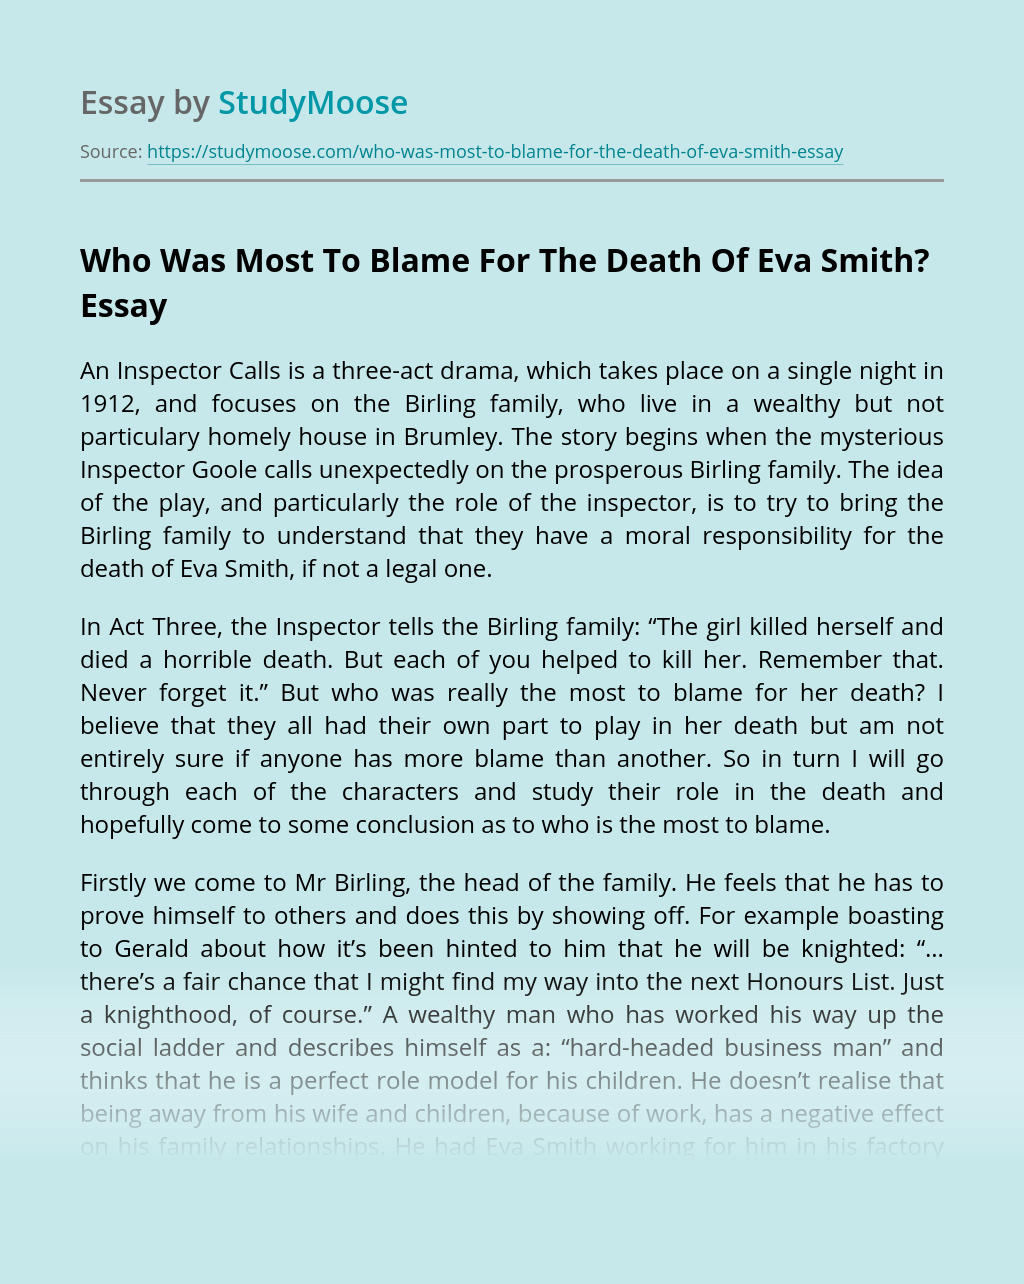 Who Was Most To Blame For The Death Of Eva Smith?